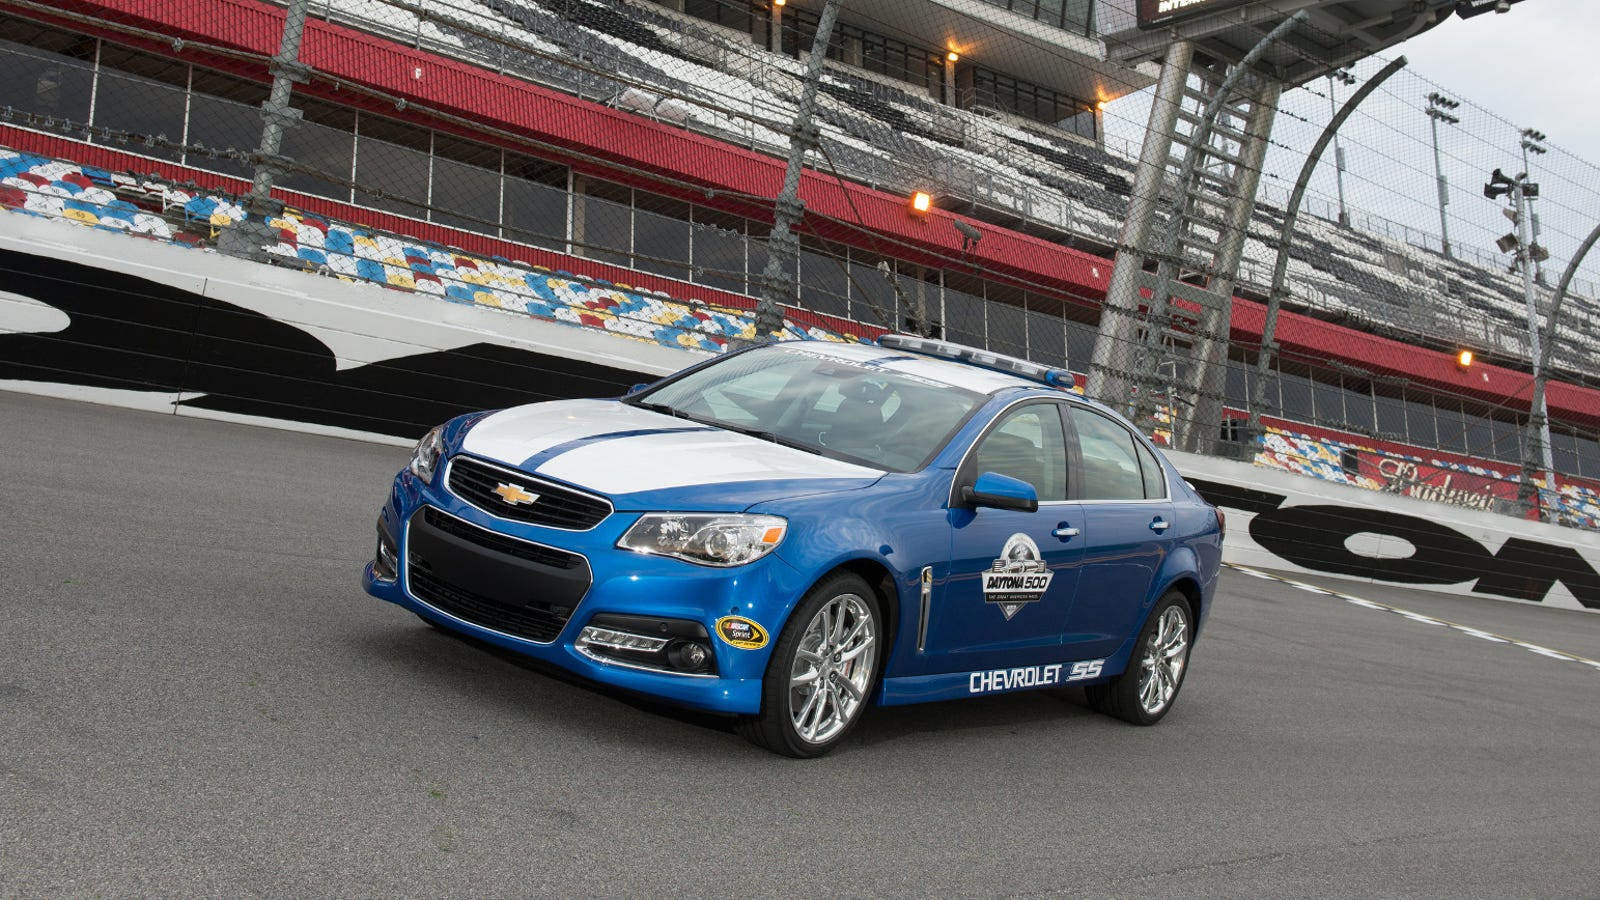 You Can Get One Of The Last Chevrolet Ss Sedans Up To Percent Off